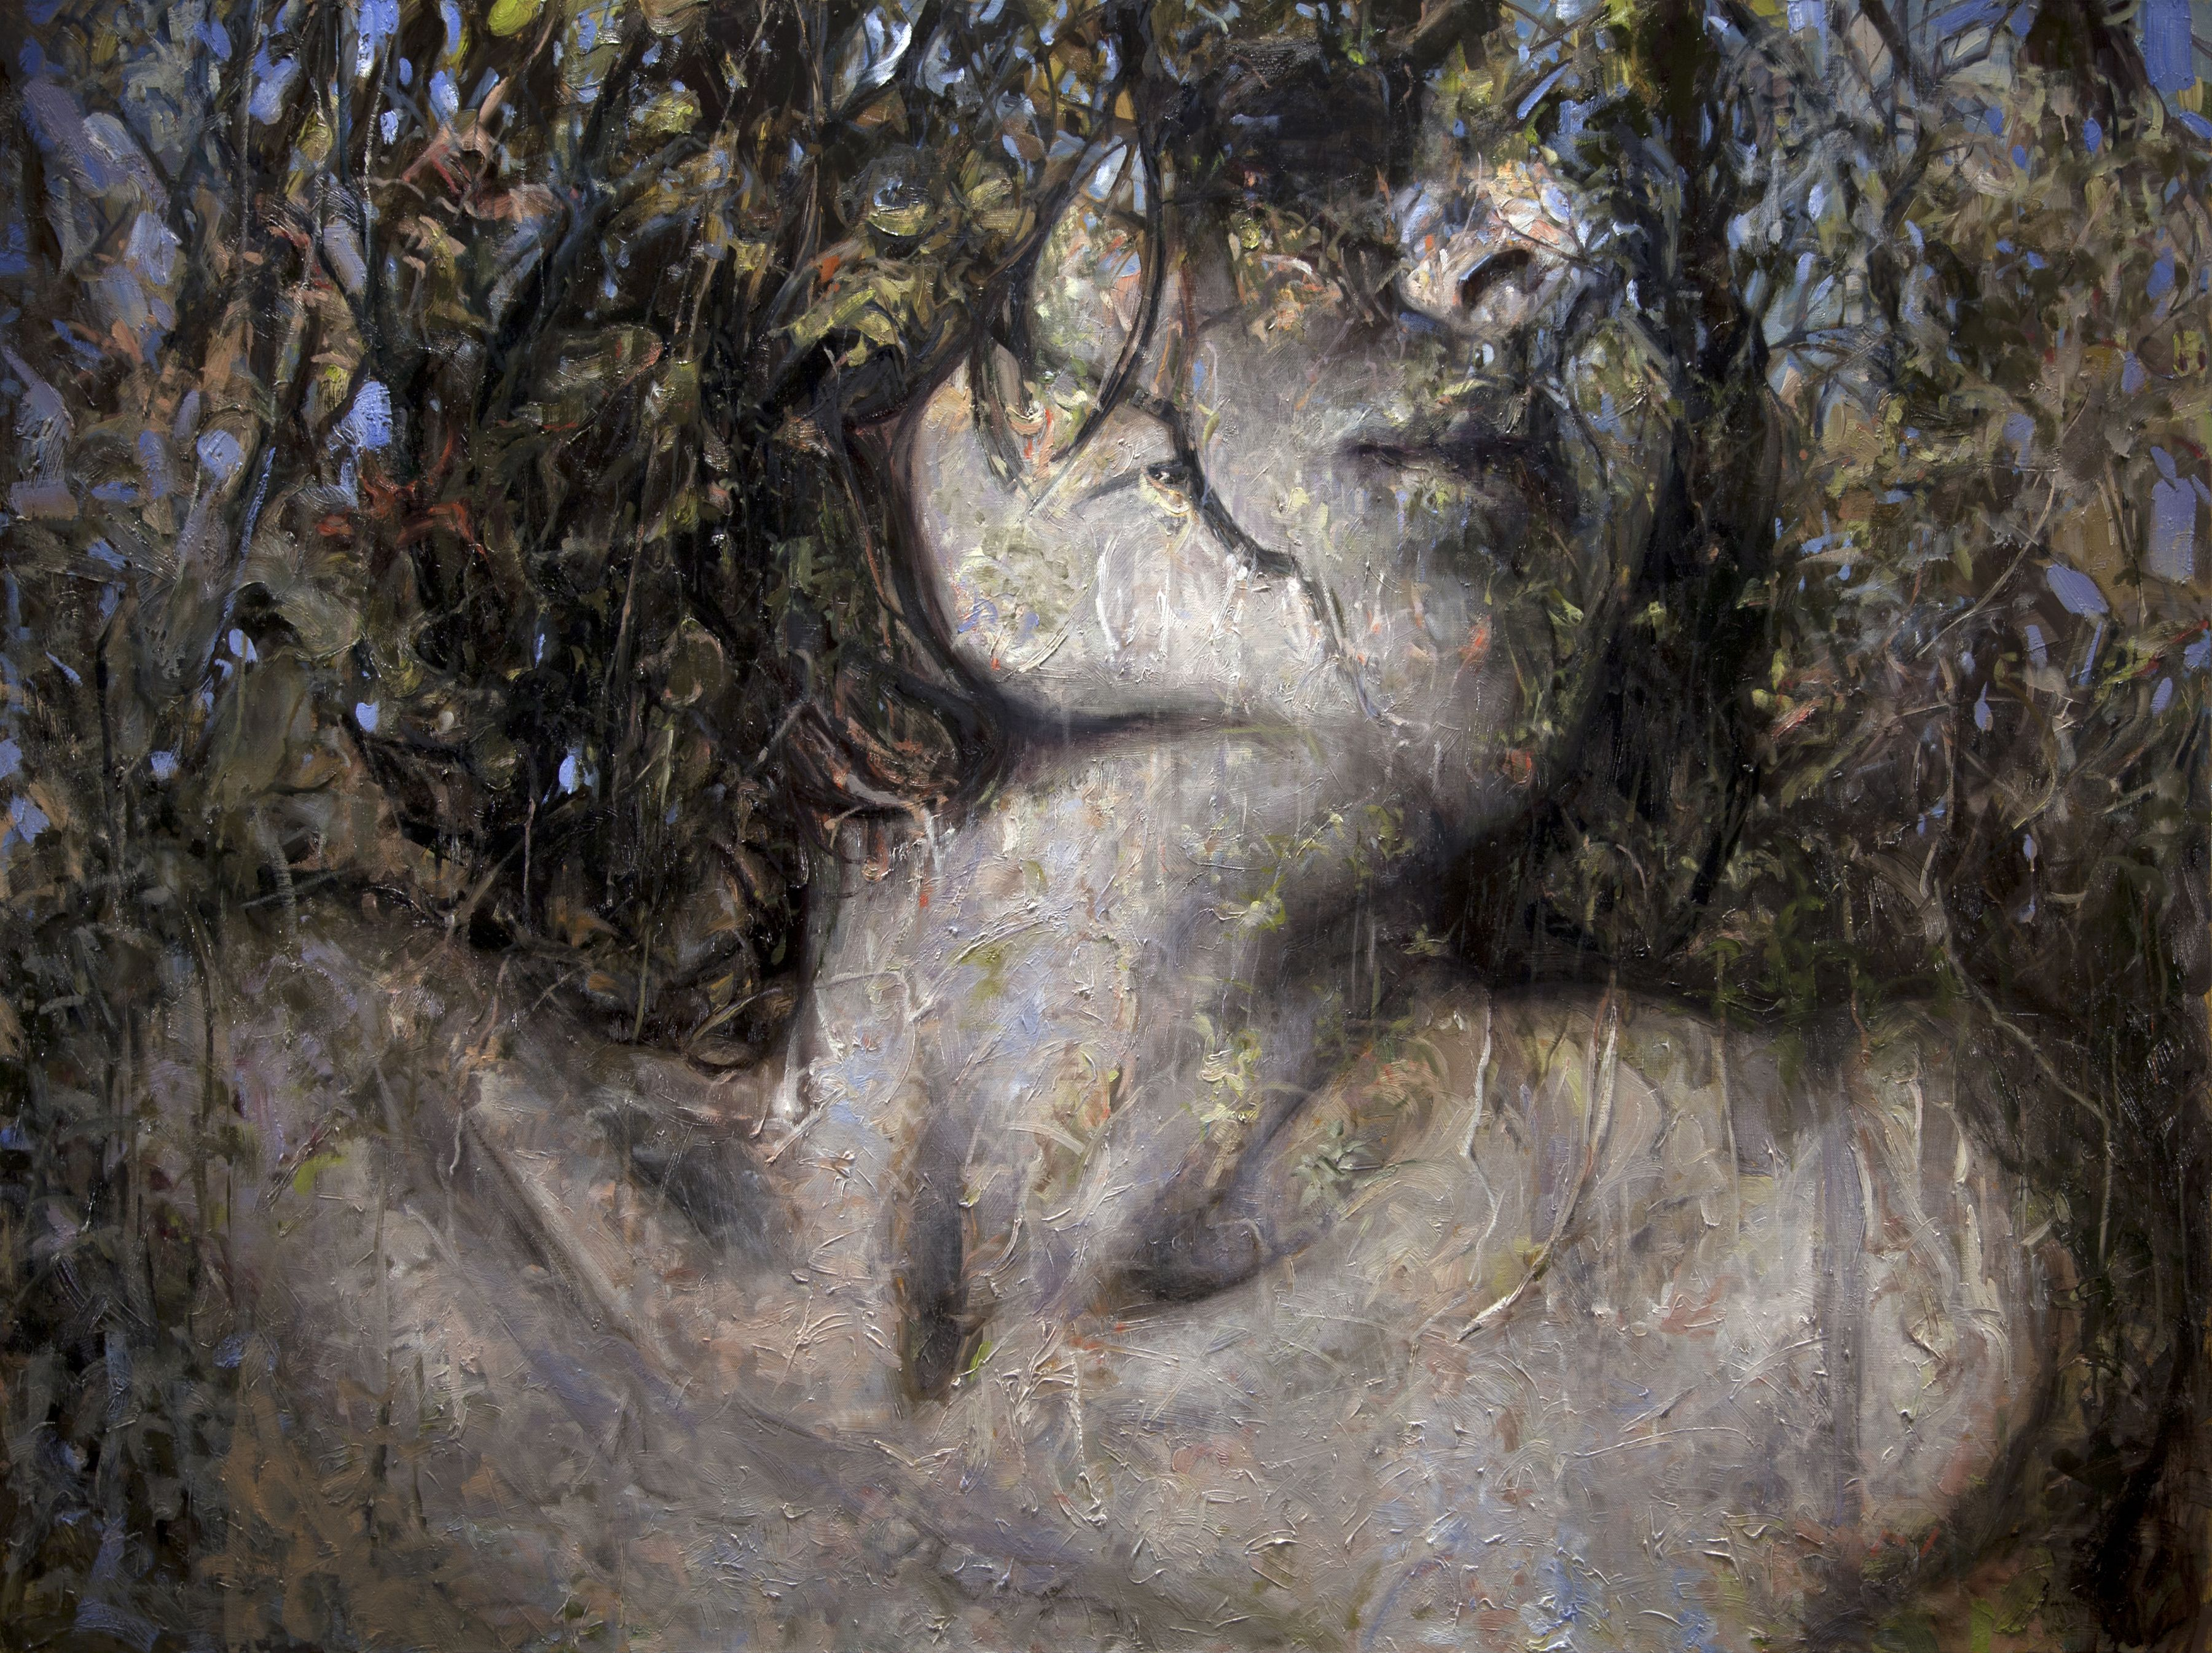 alyssa monks, Harmony (SOLD), 2016, oil on linen, 60 x 80 inches